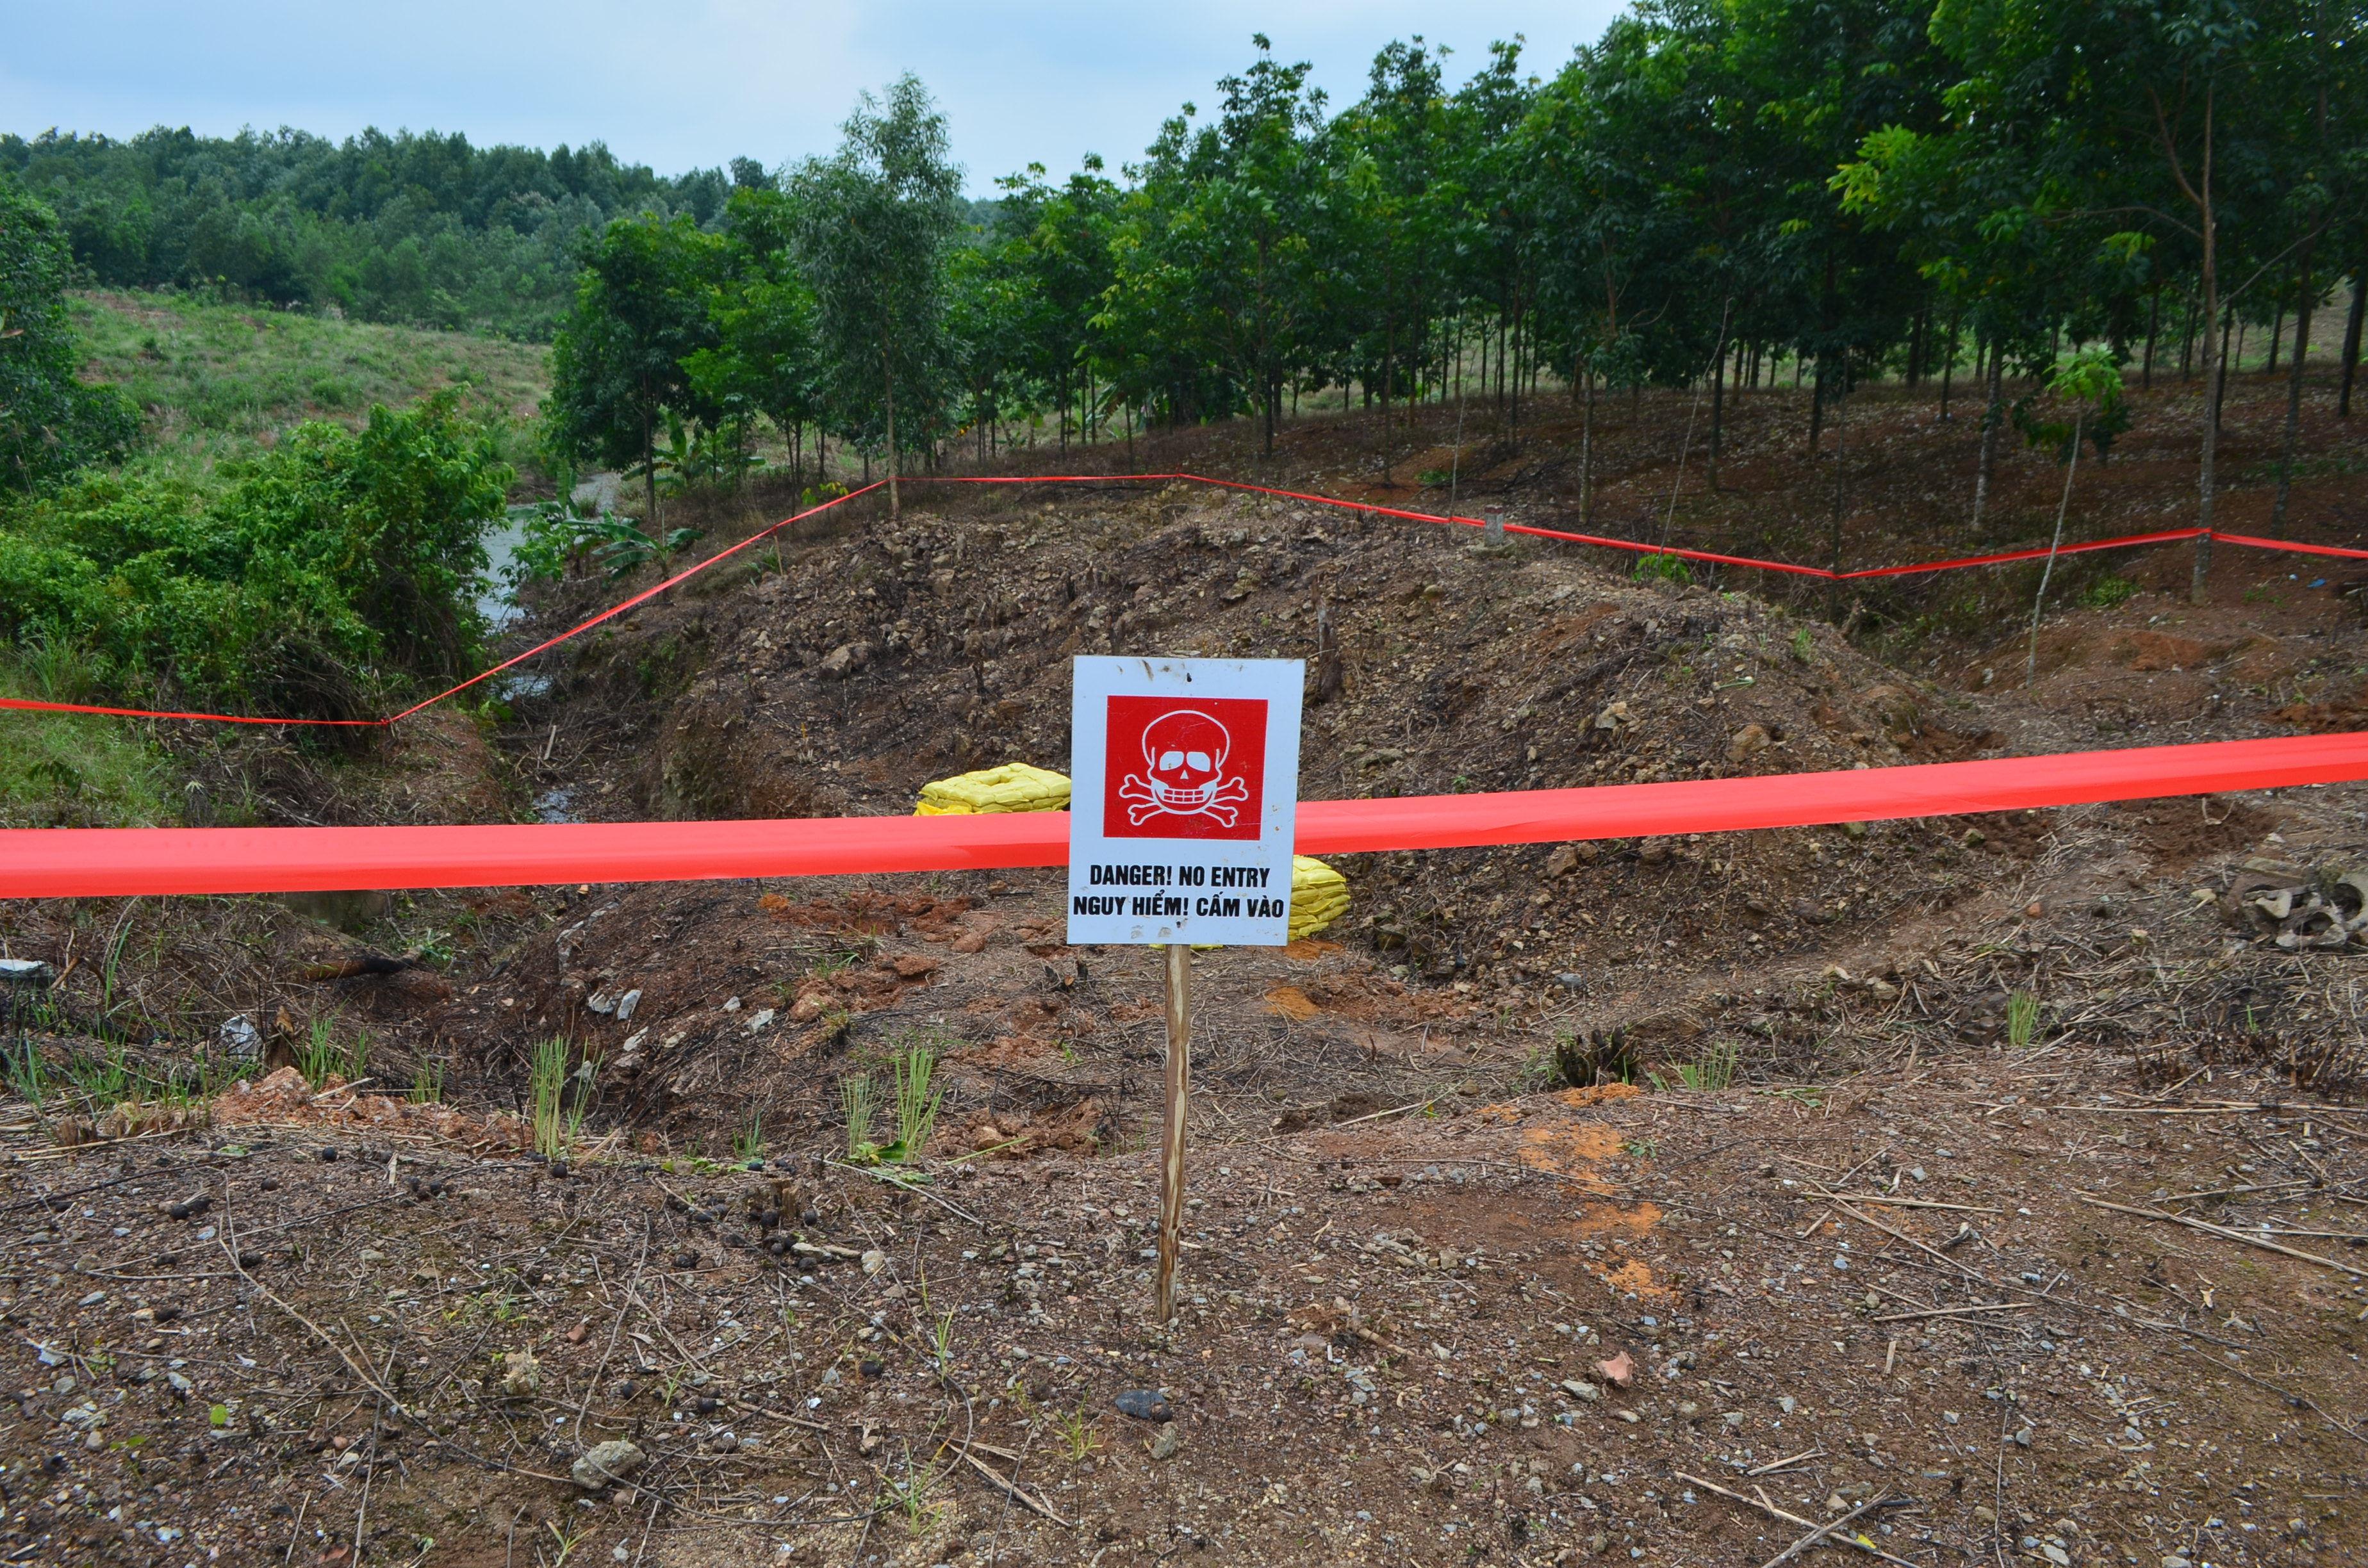 Site cordoned off by MAG for controlled explosion of UXO found several days ago (Photo: Simon Roughneen)